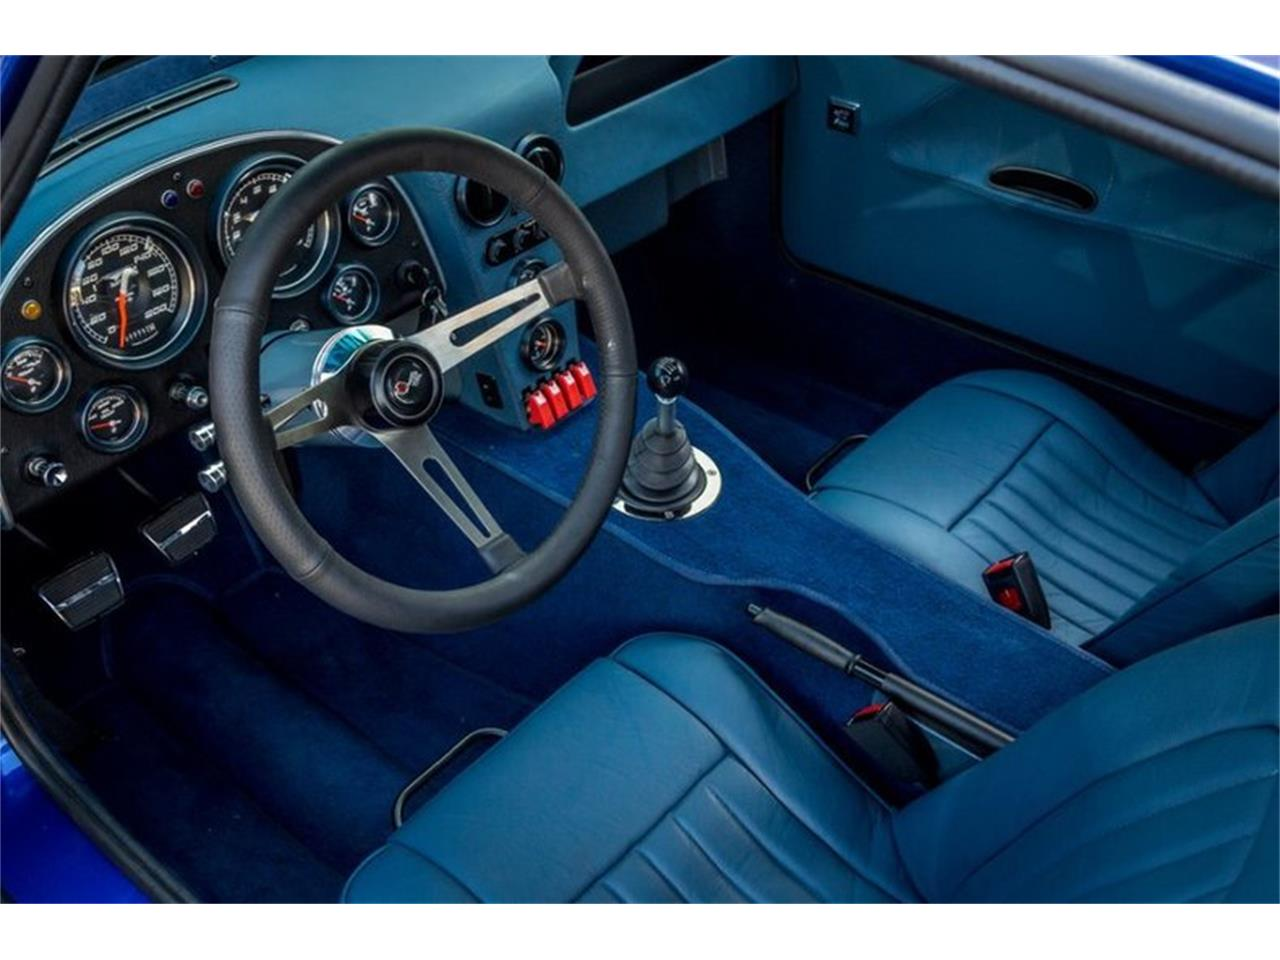 1963 Superformance Corvette Grand Sport for sale in Irvine, CA – photo 10